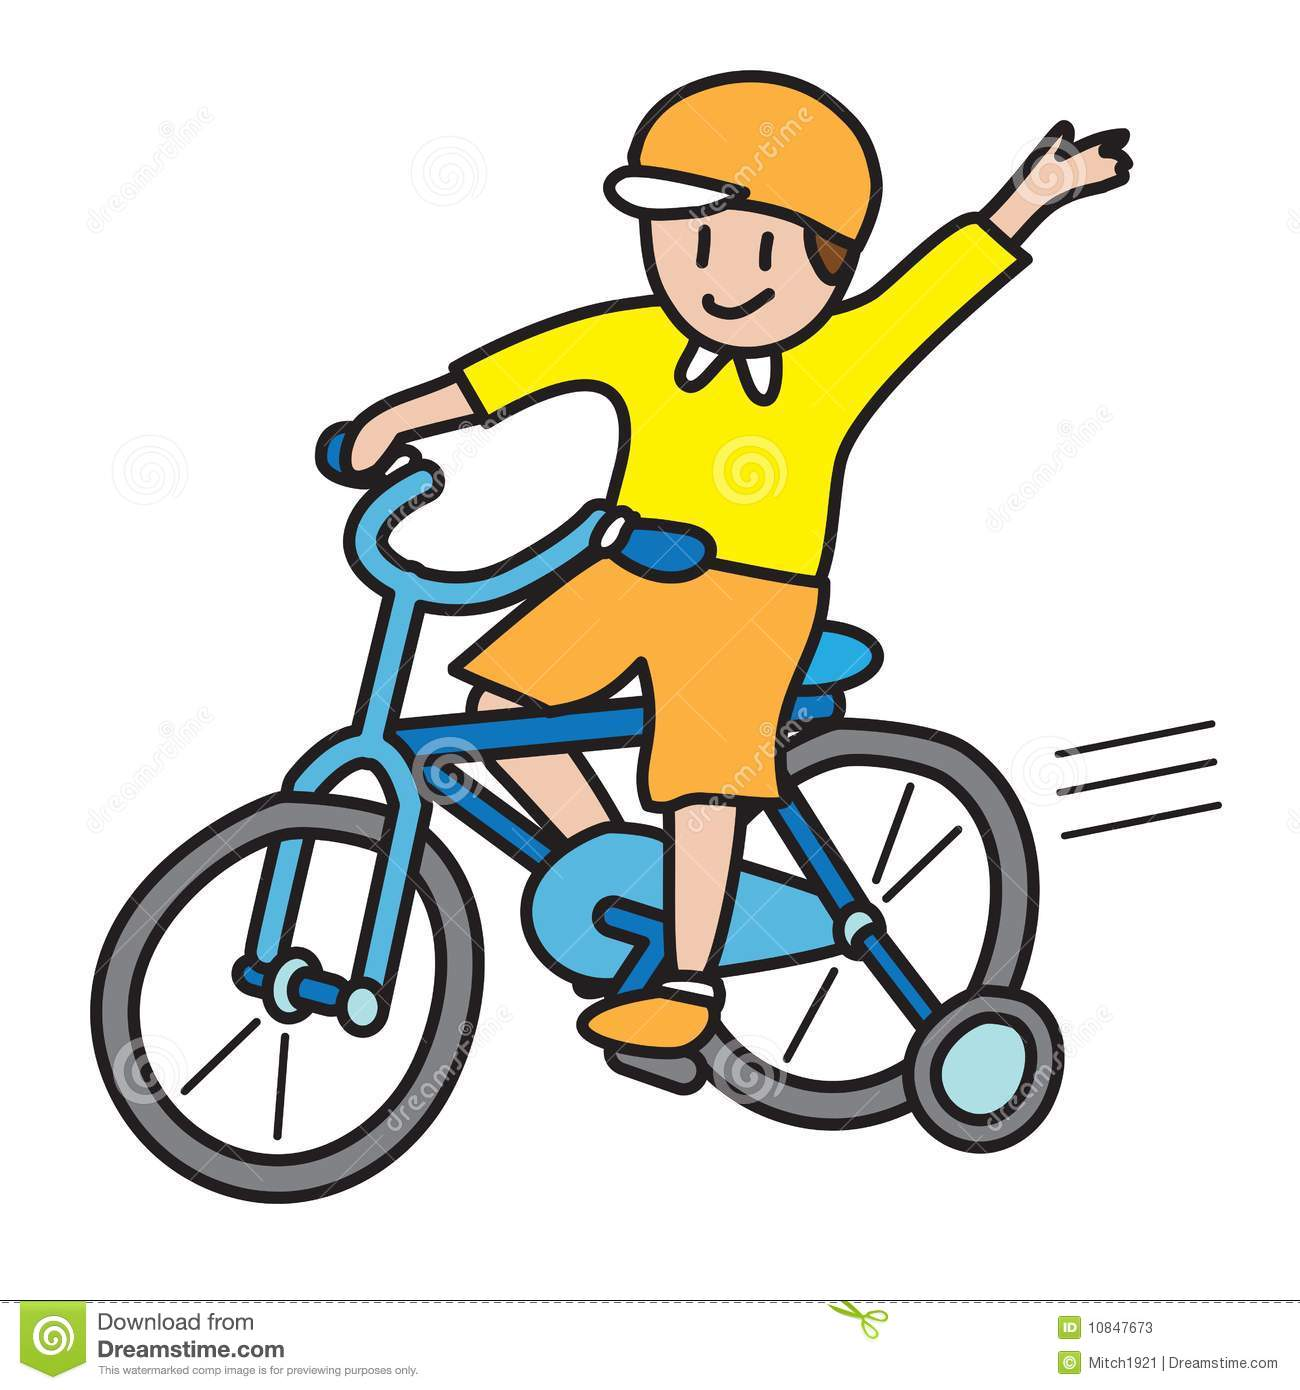 Riding bike rider . Clipart bicycle rode